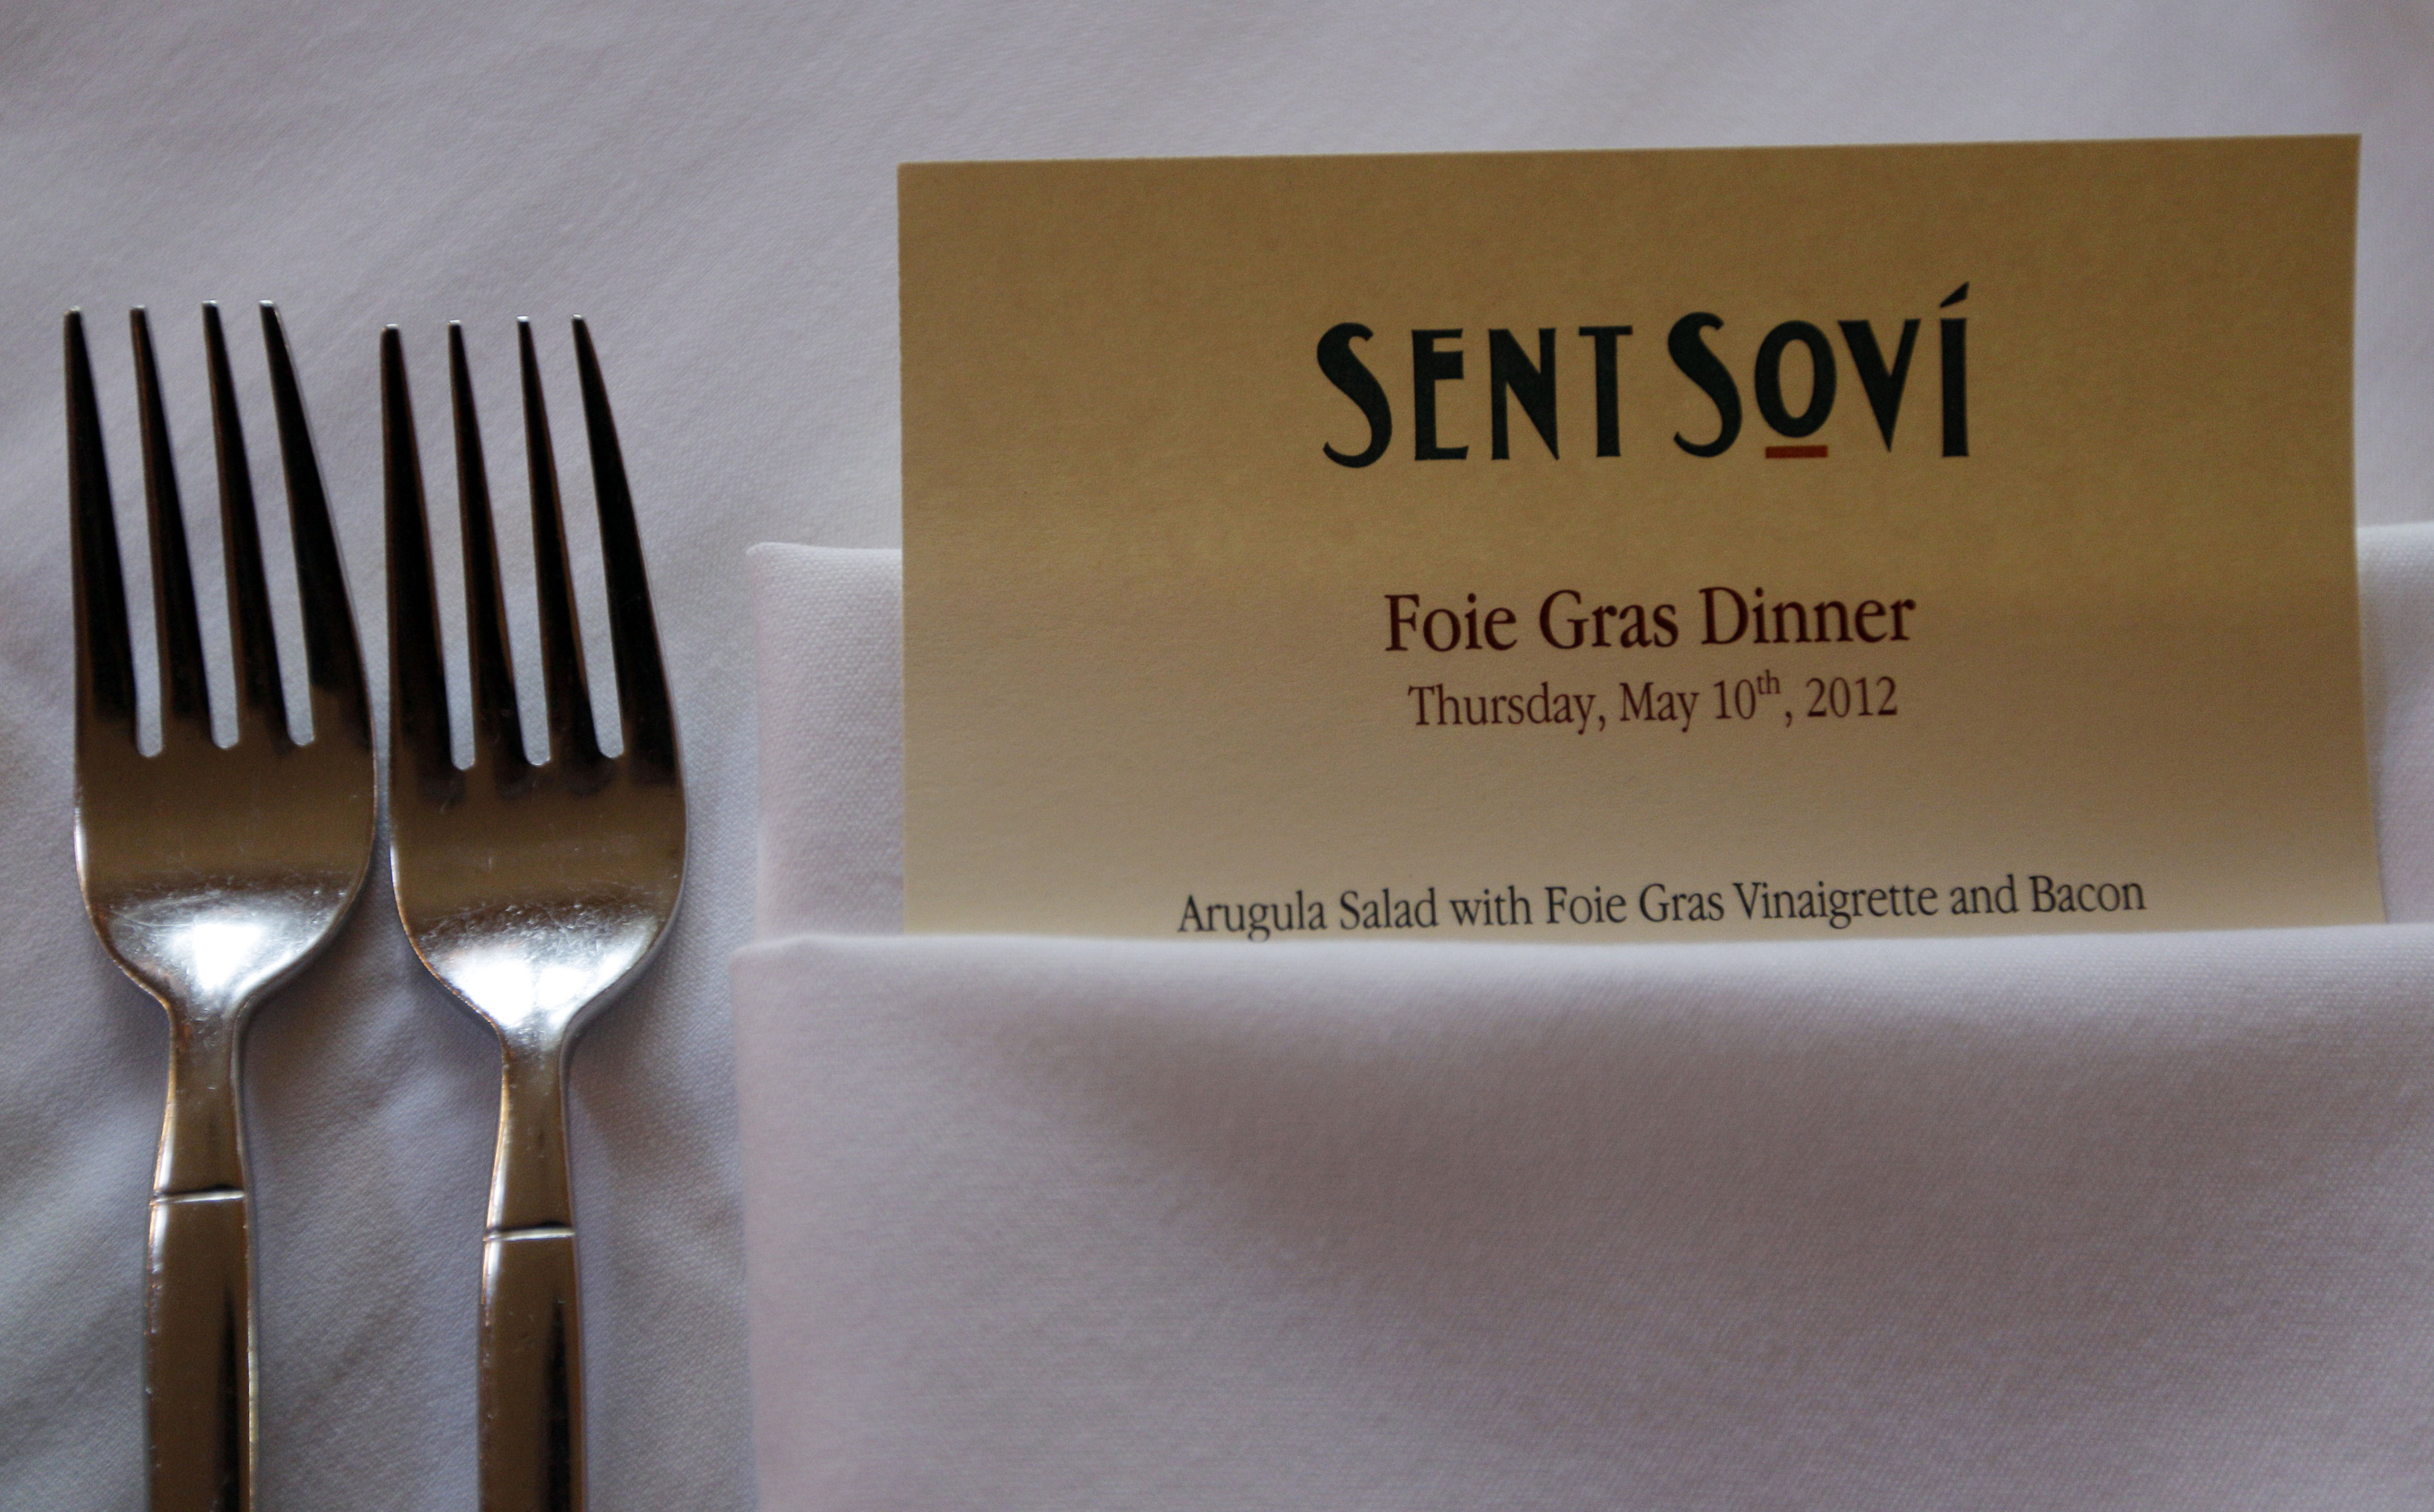 FILE - In this May 11, 2012, file photo, a foie gras-based menu is displayed at Sent Sovi restaurant in Saratoga, Calif.  (AP Photo/Marcio Jose Sanchez, File)